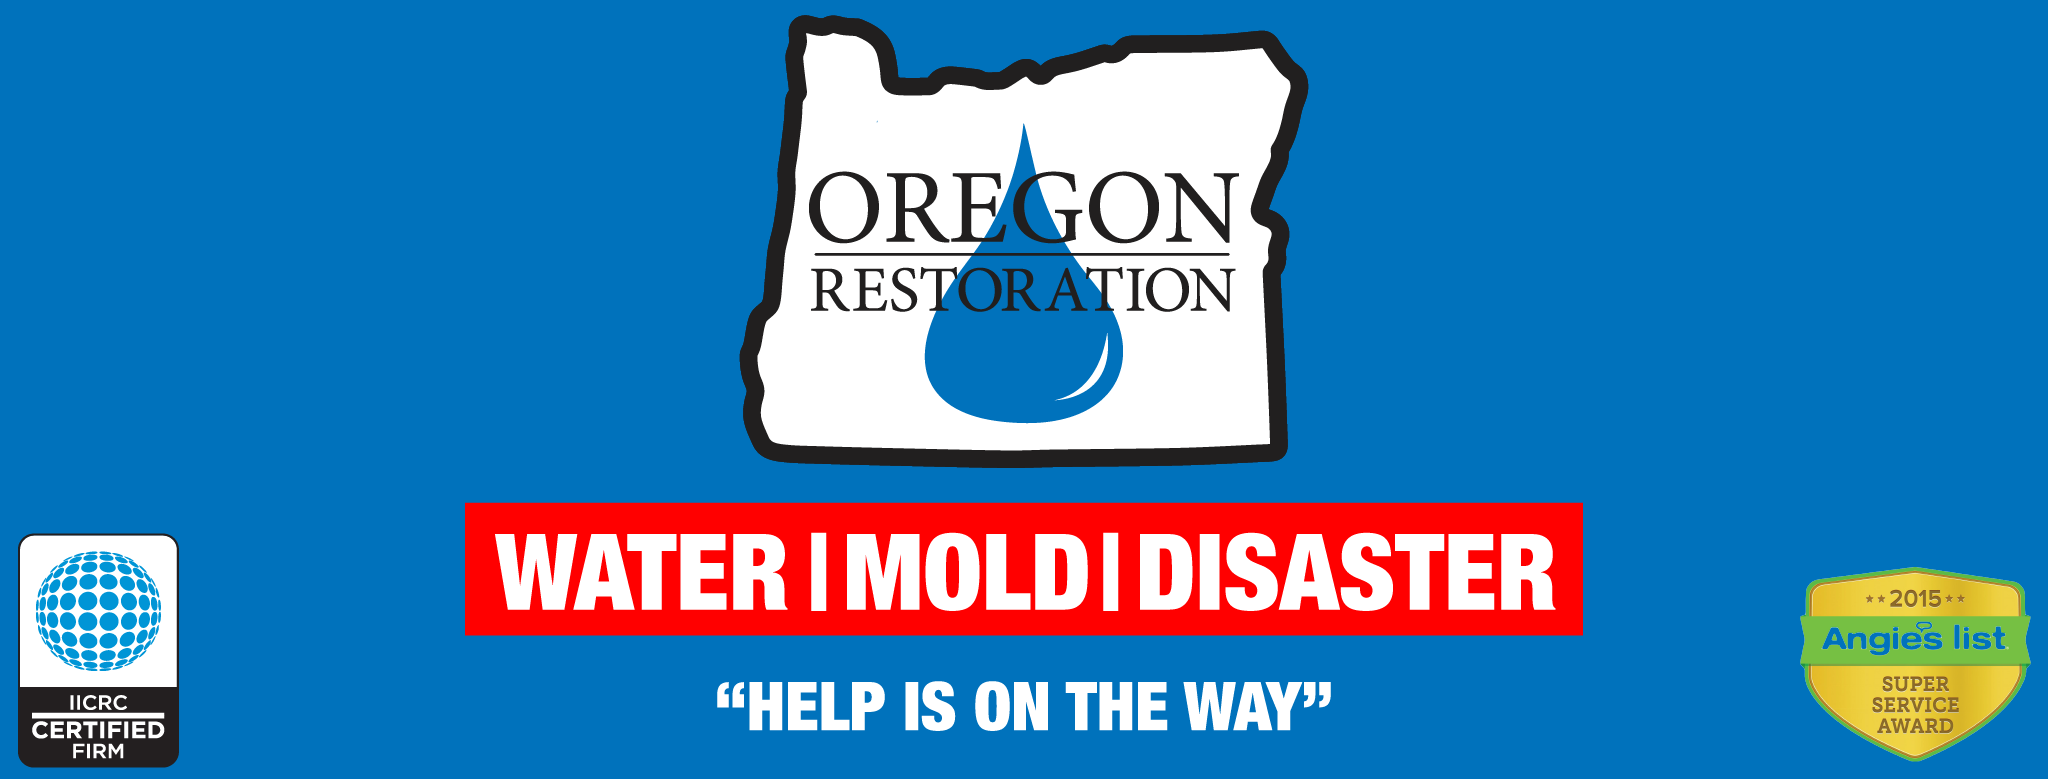 Oregon Restoration Co | Water Damage Specialist in 9033 South West Burnham Street - Tigard OR - Reviews - Photos - Phone Number